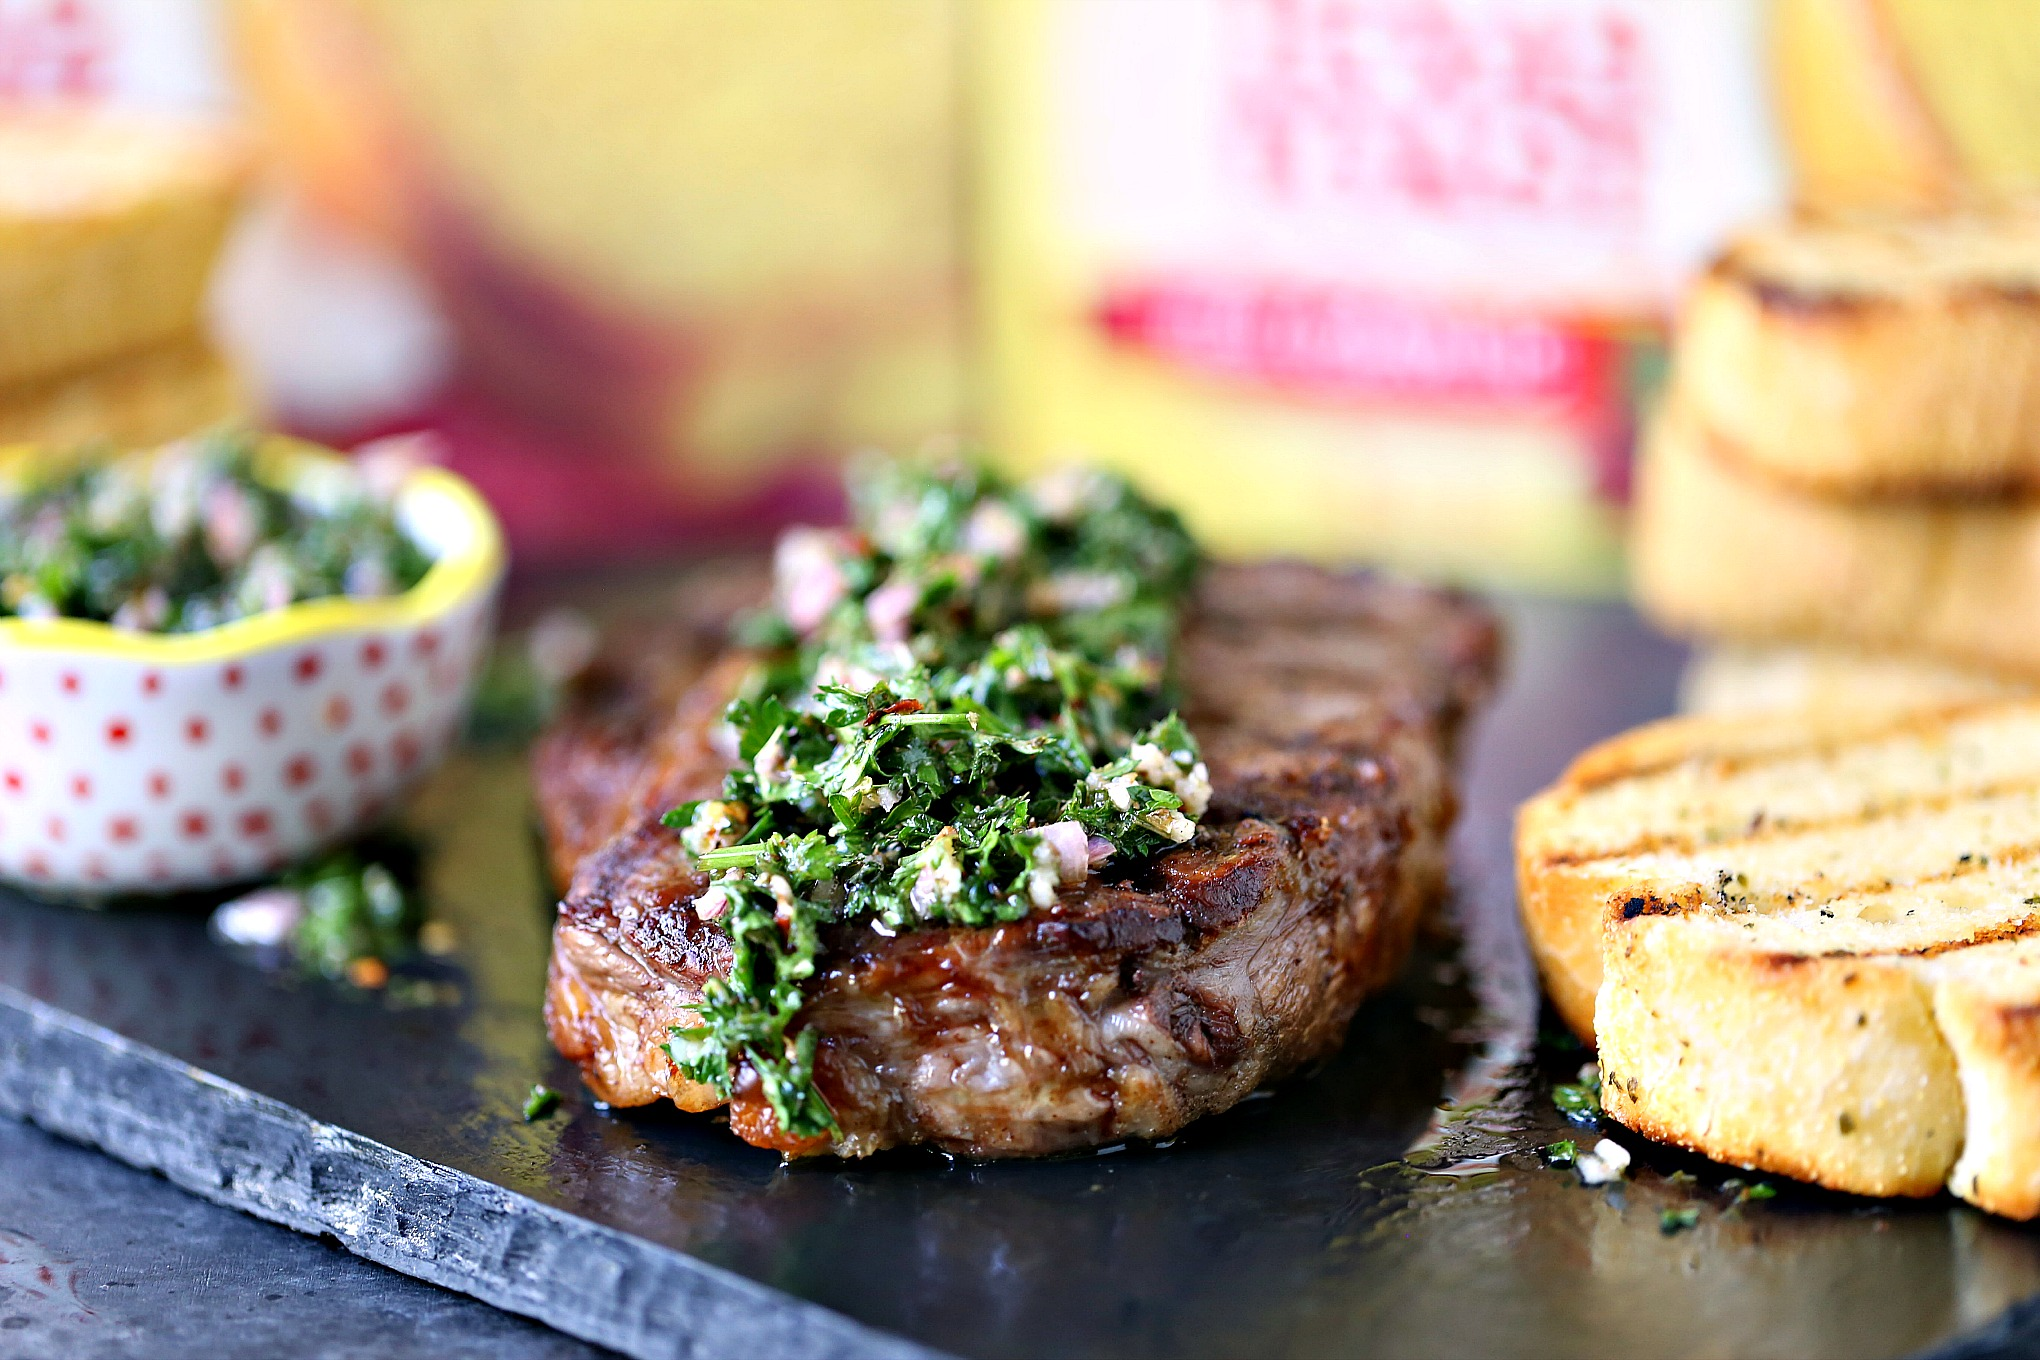 Grilled Rib Steaks with Chimichurri Sauce served with Texas Toast for dinner!